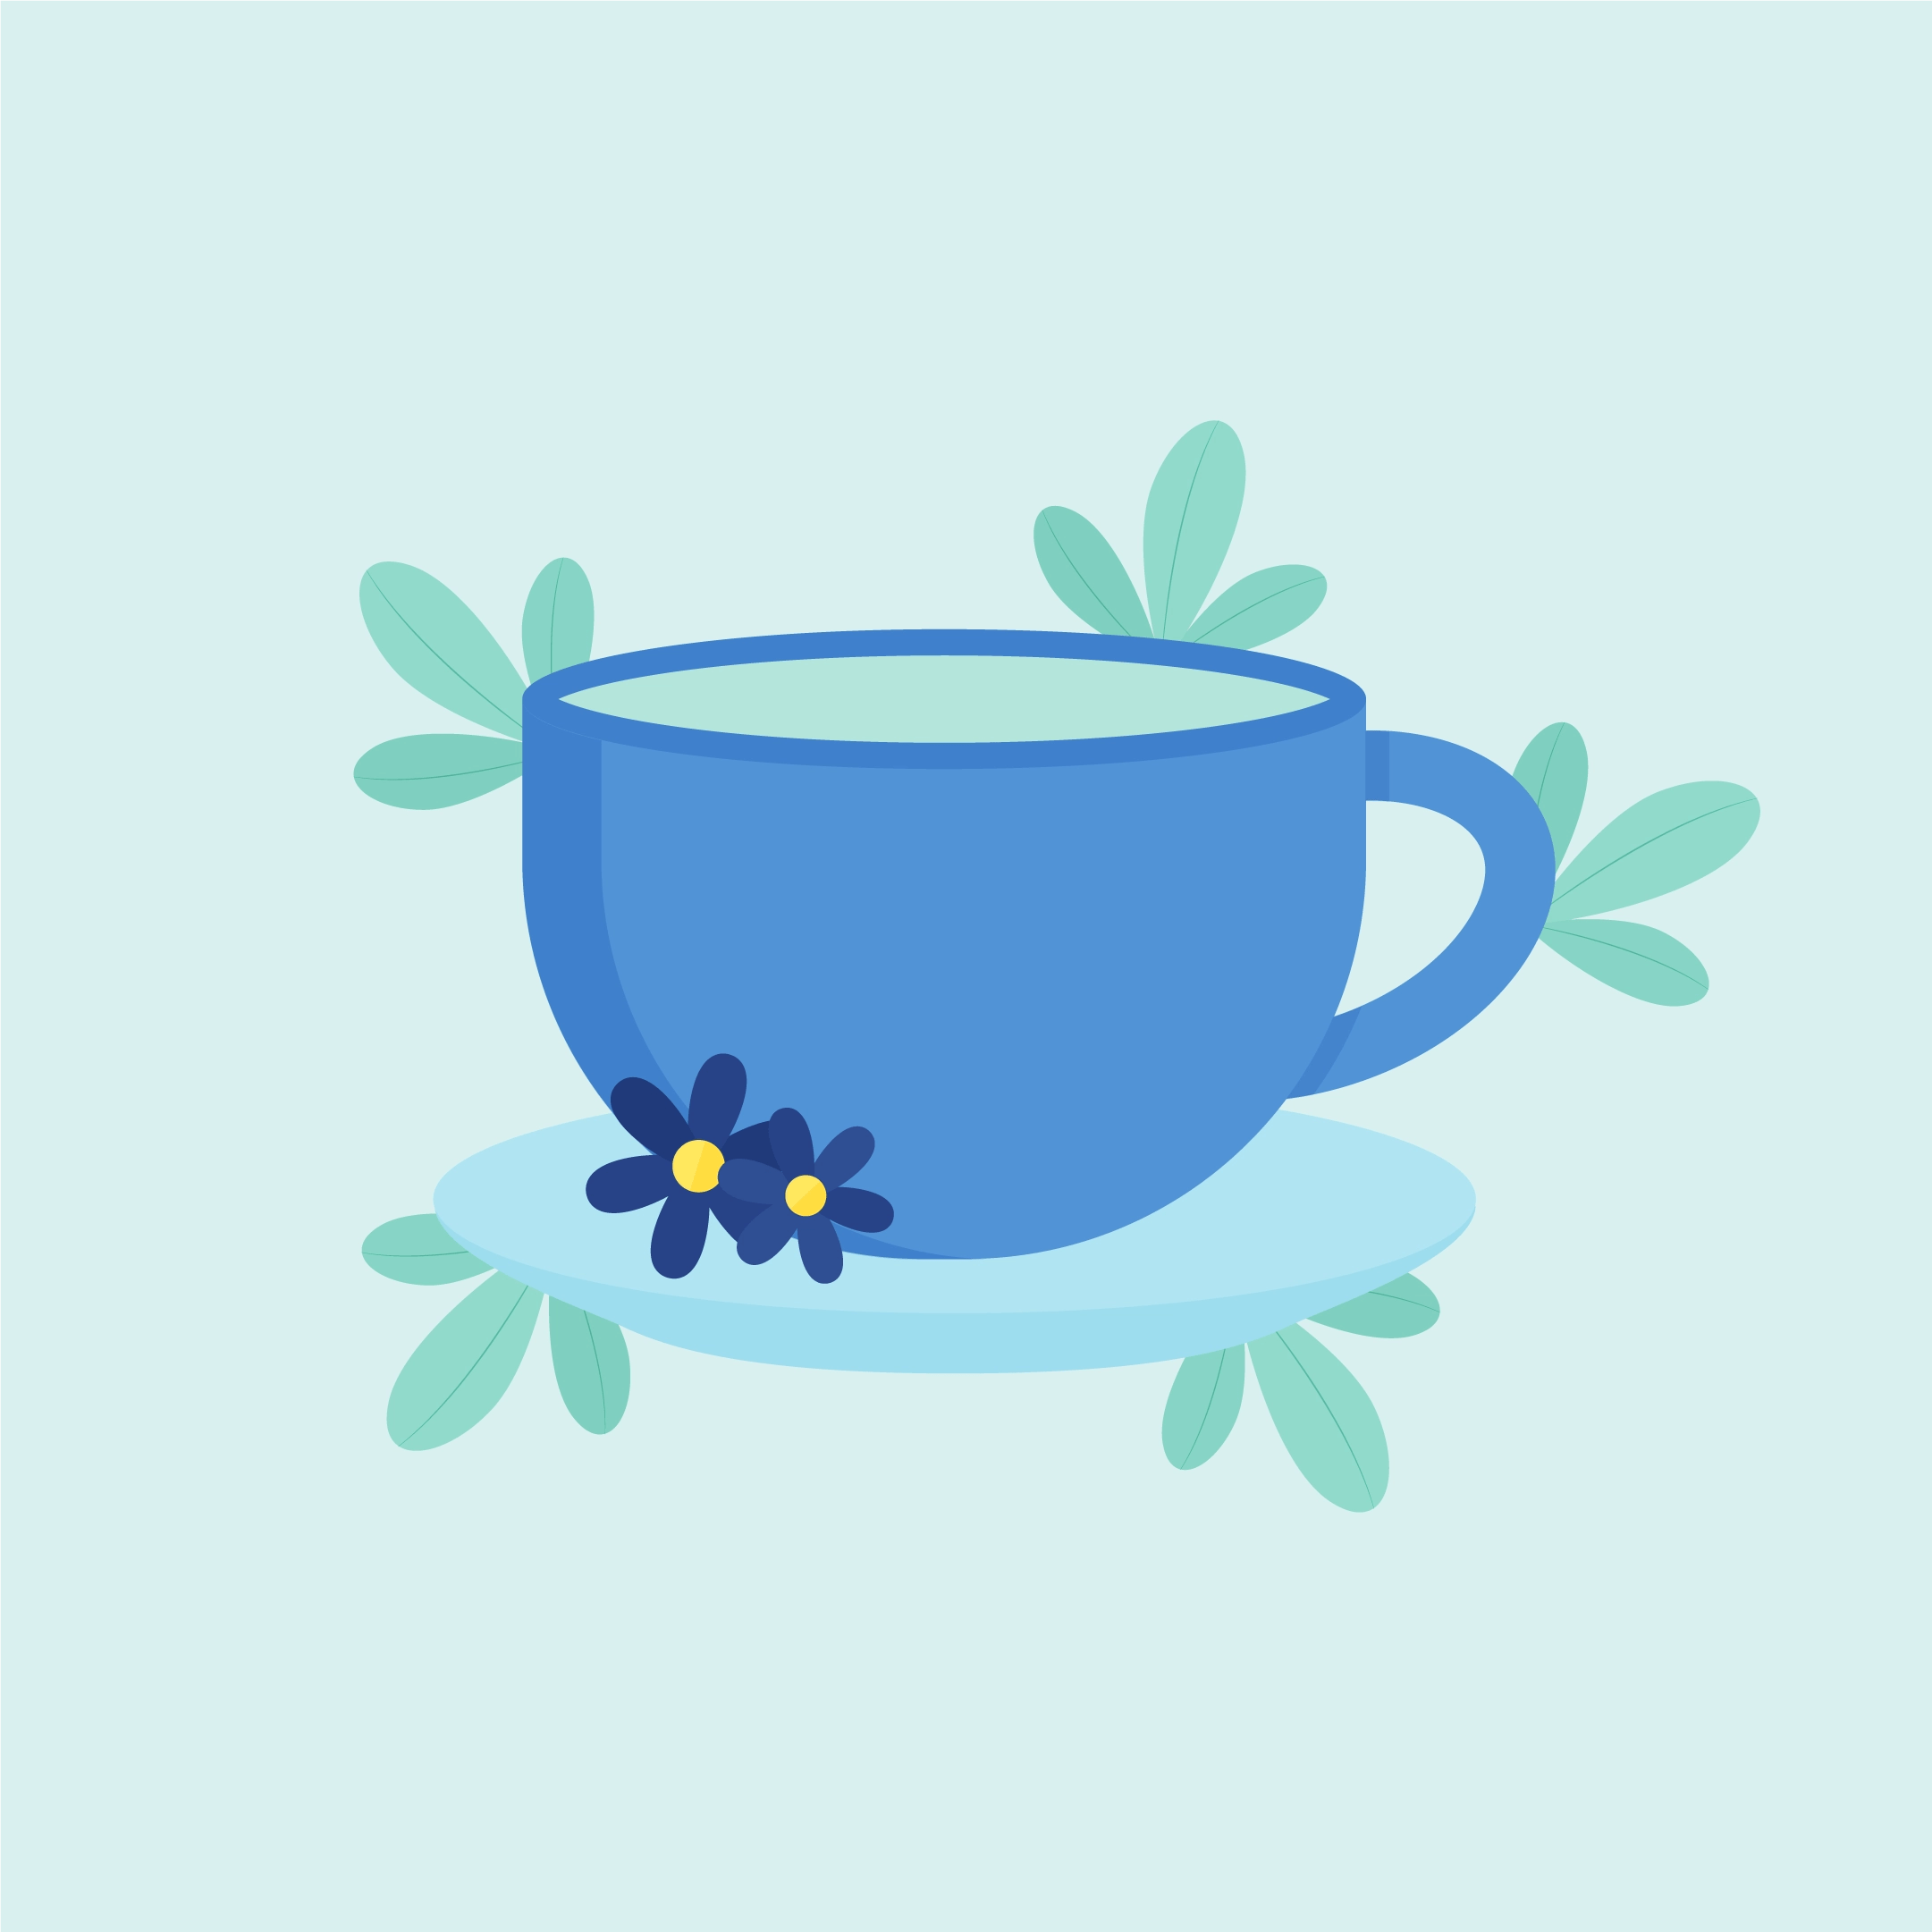 Vector illustration of a cup of green tea with saucer & flowers in flat design style